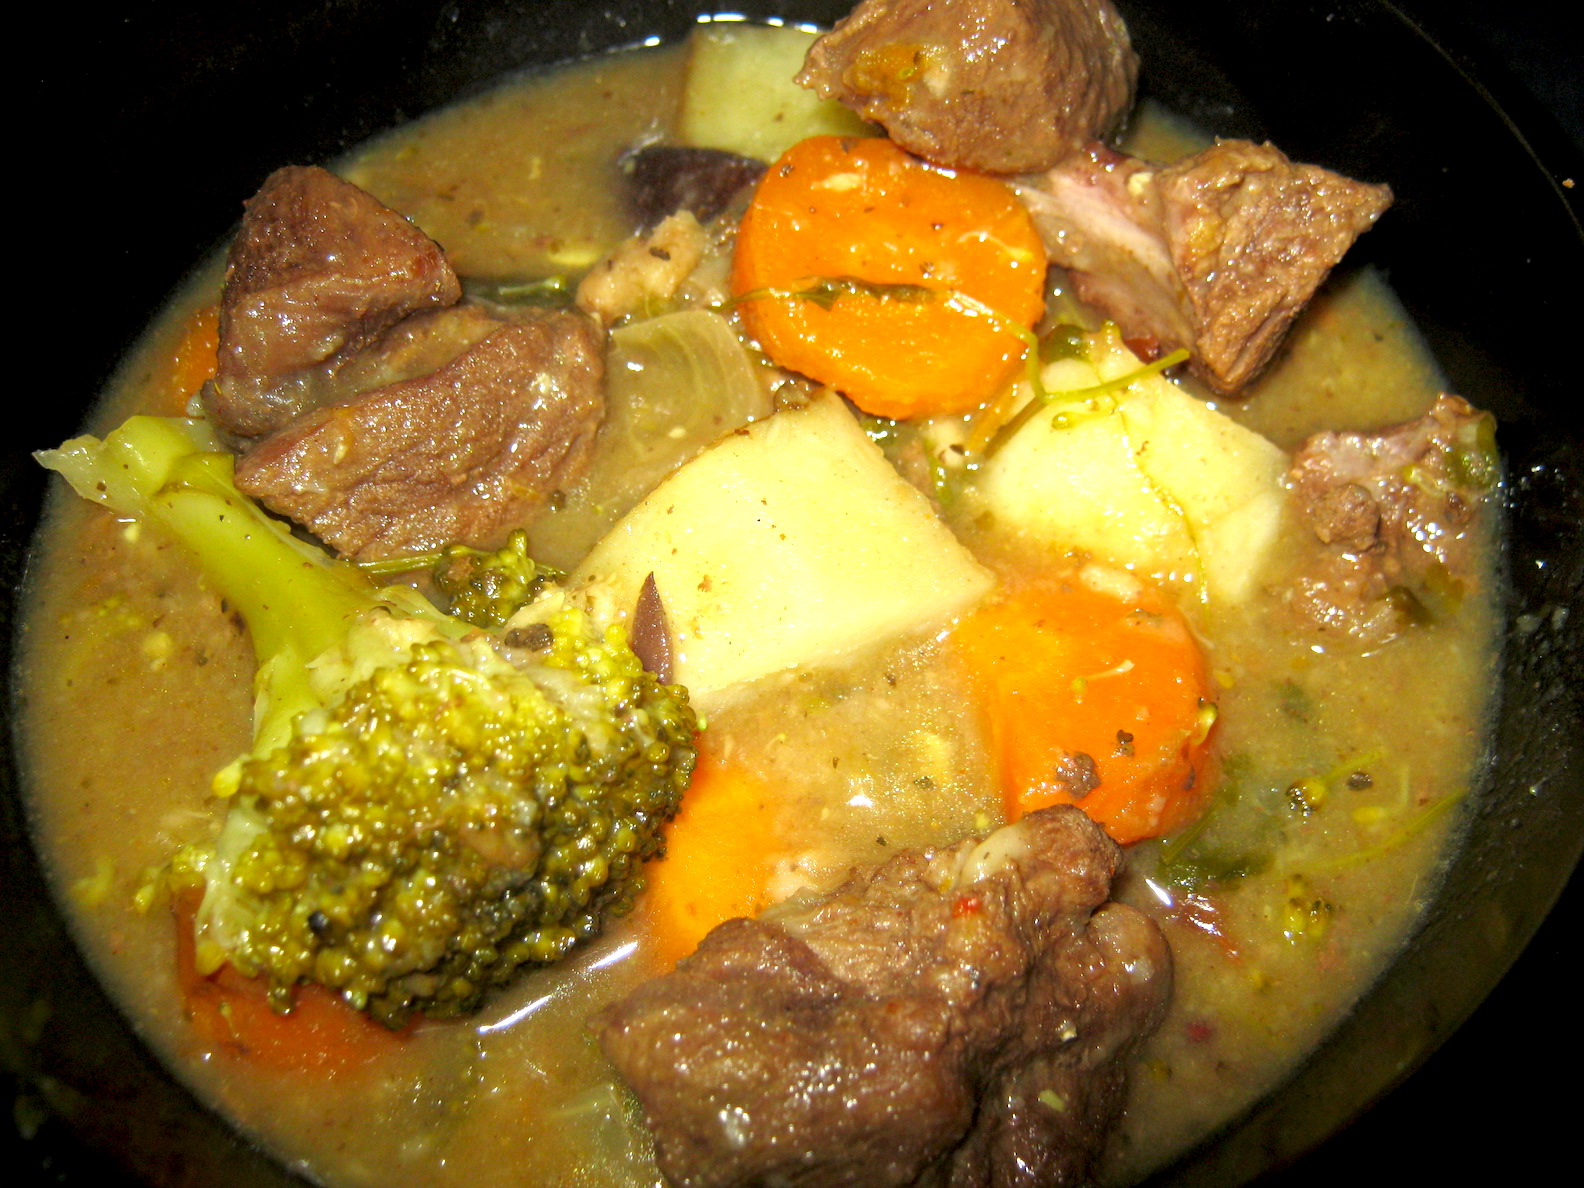 Venison stew in a bowl